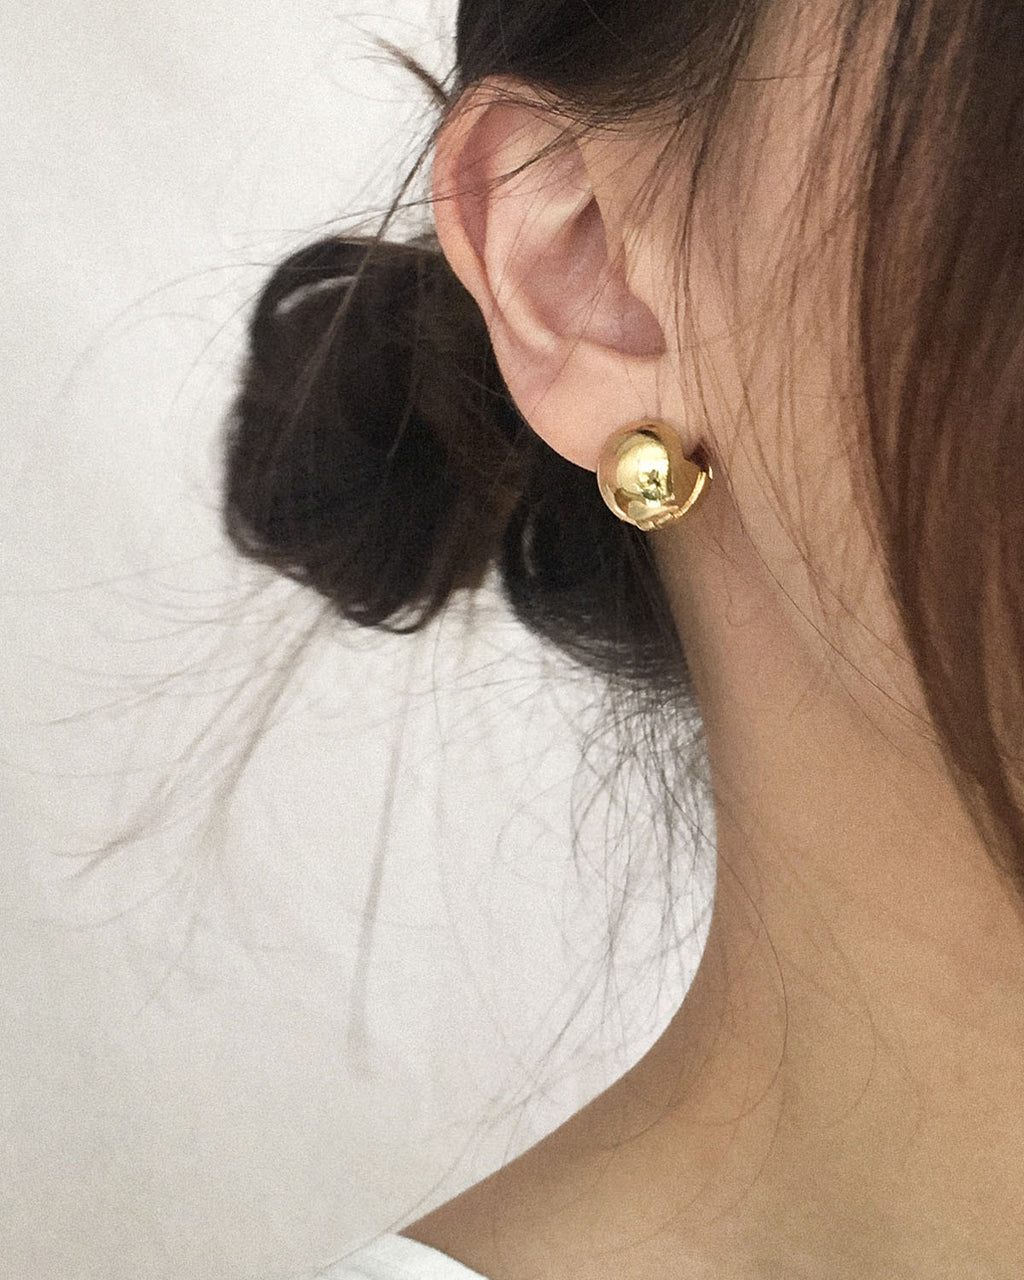 Classy golden ball earrings worn as a ear stud - The Hexad